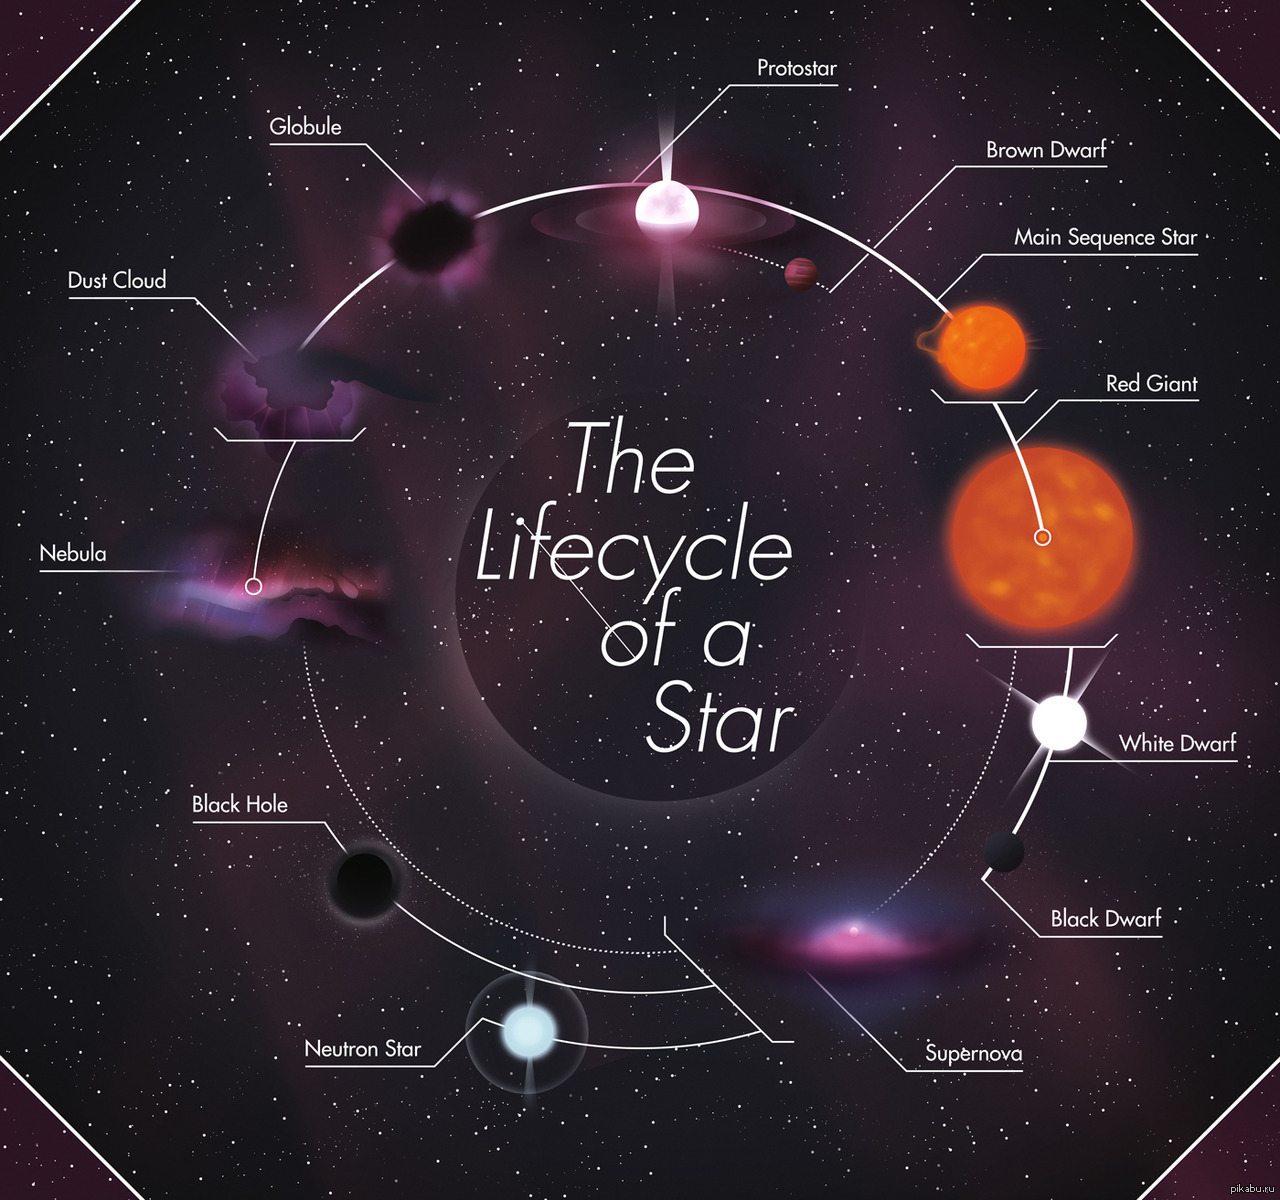 life cycle of a star essay Life cycle of stars - galaxy essay example krishan kumar astronomy s - life cycle of stars introduction cabral life cycle of stars our sun is a perfect example of a star, and there is an incredible amount of stars in the universe.